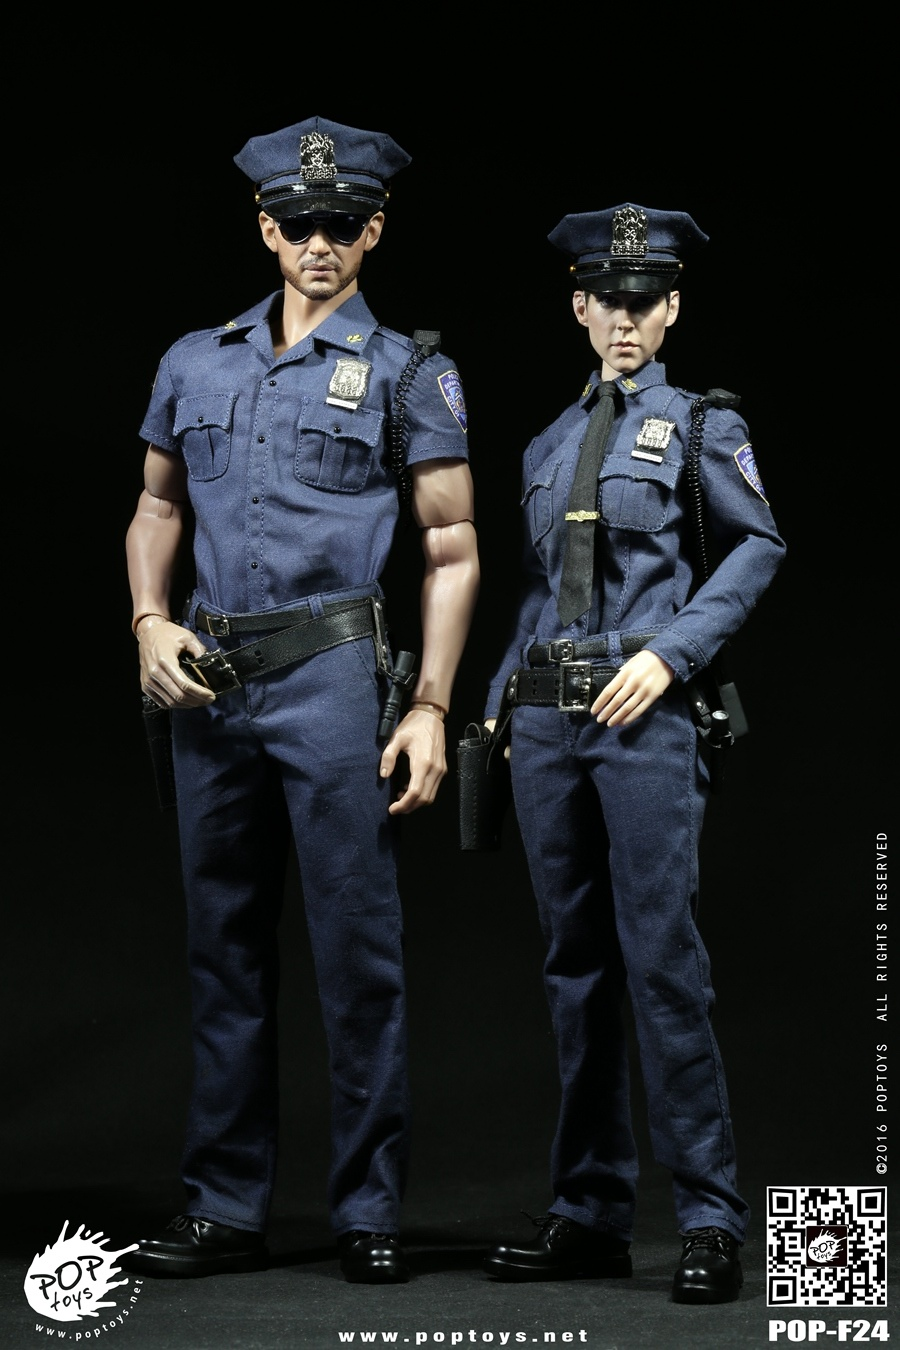 1:6 scale Super flexible figure U.S. Policeman or Policewoman 12 action figure doll Collectible Model plastic toy did1 6 scale doll jean reno french soldiers special edition super flexible figure model toy wwi soldier finished product